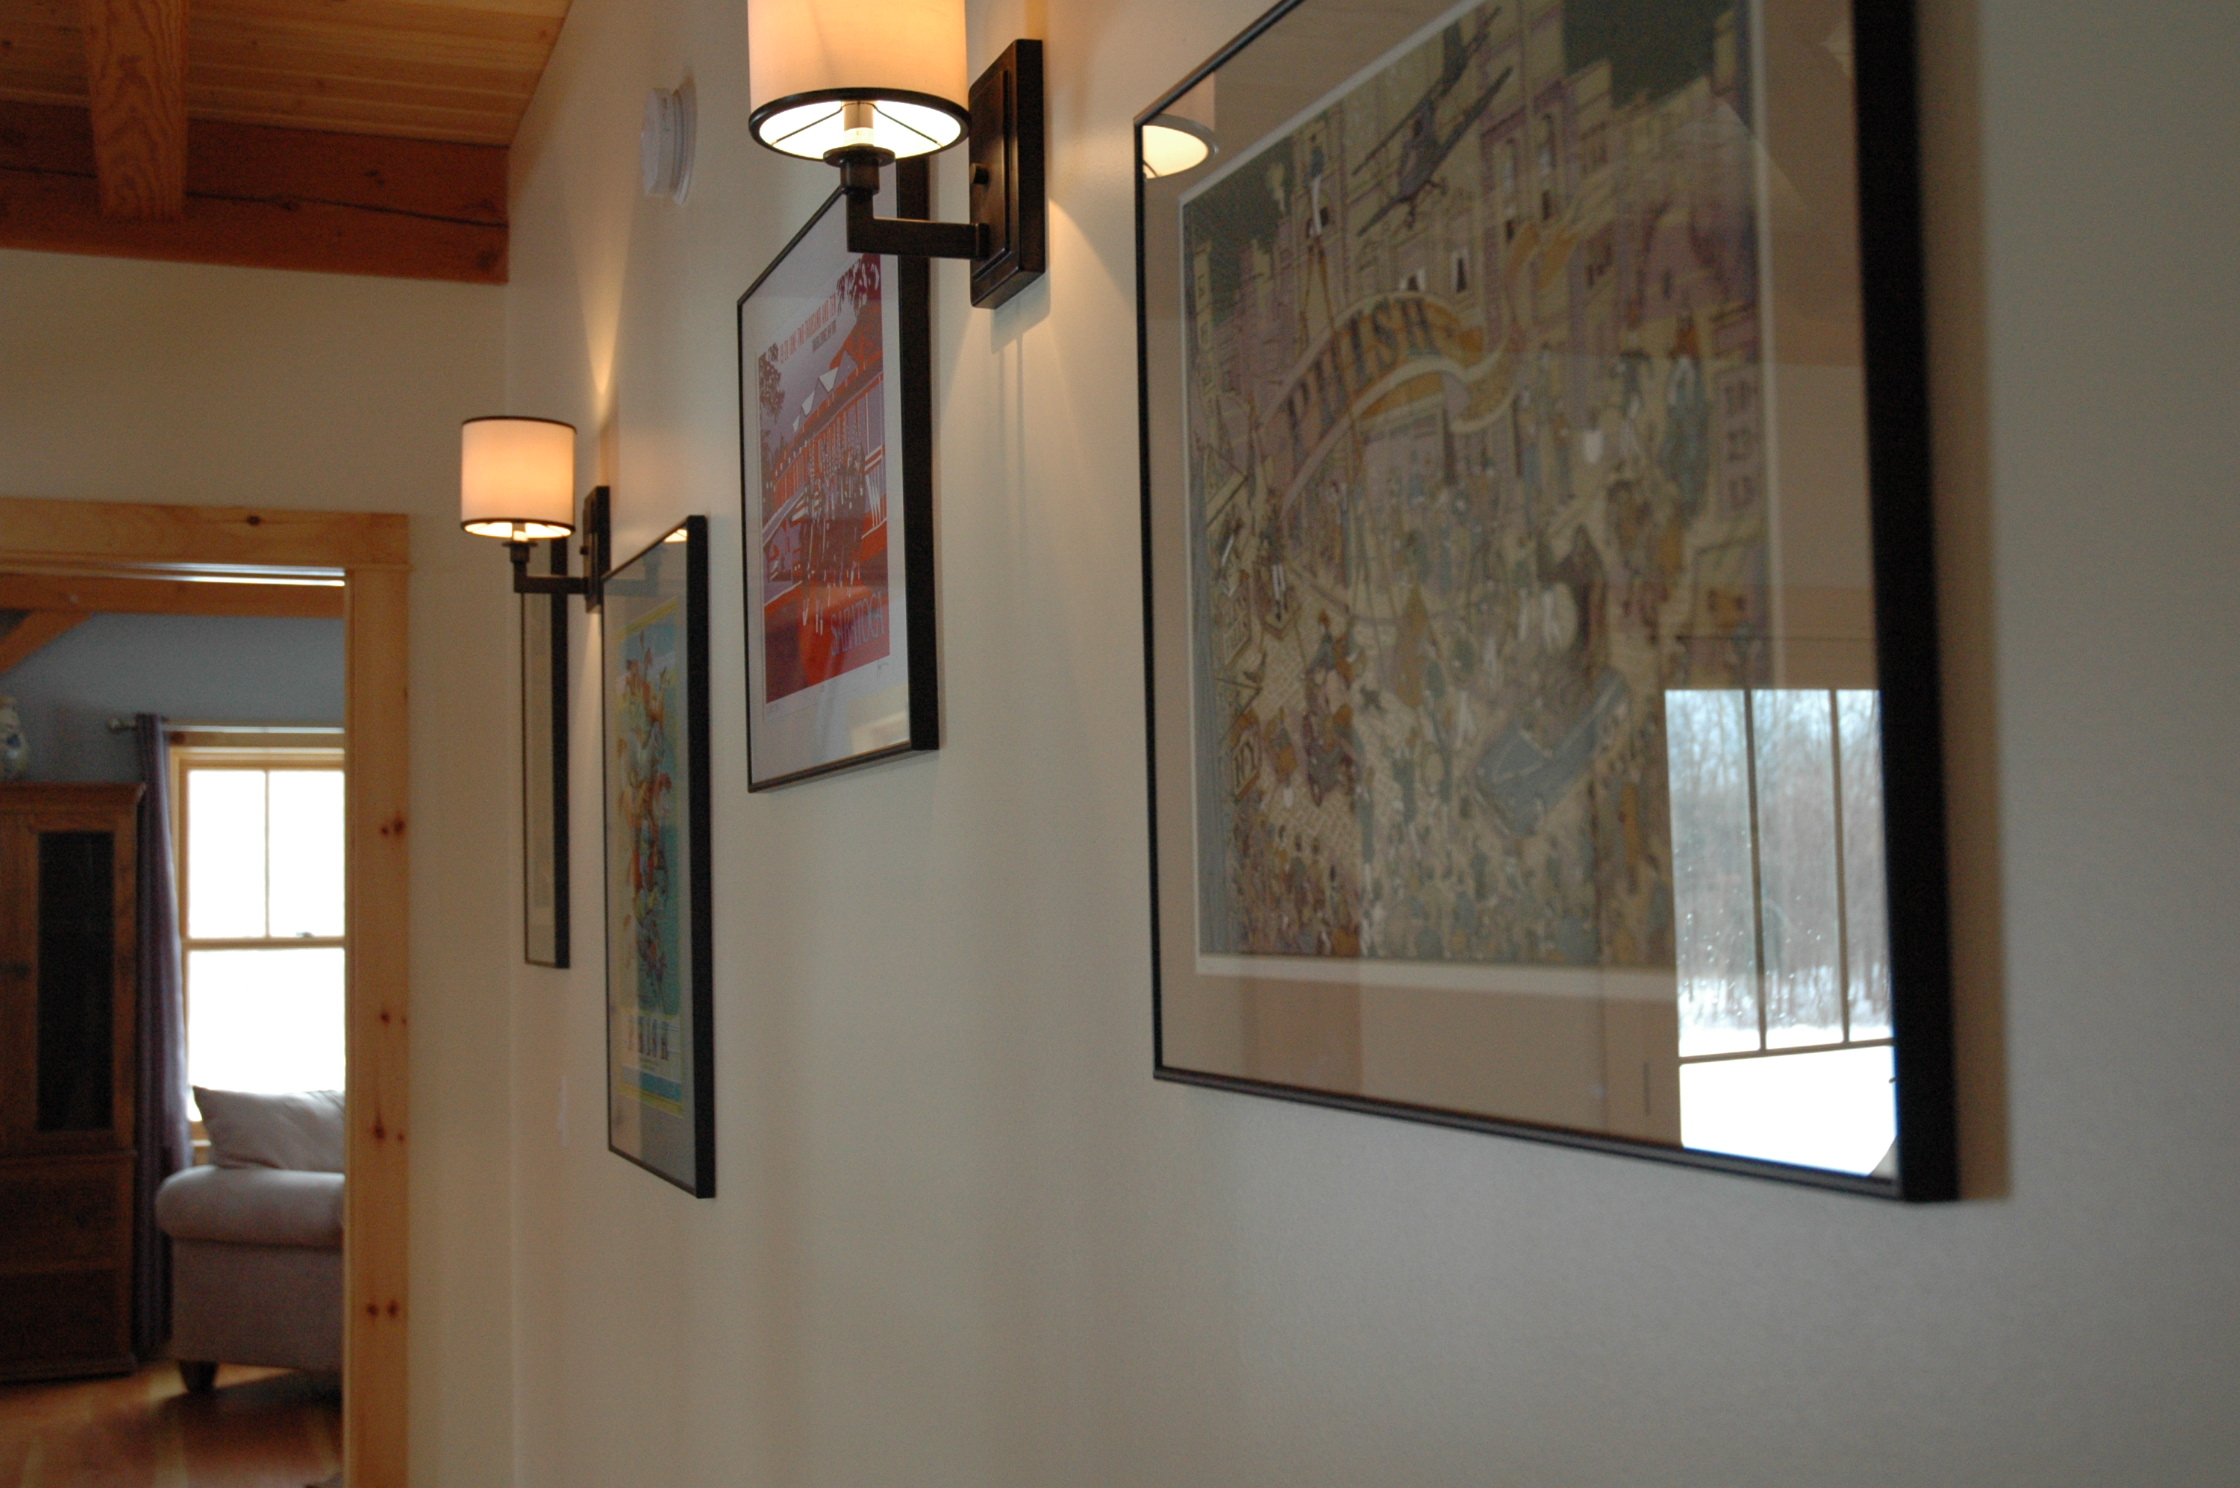 The Pieper's are big Phish fans and Ed has had all of their local concert posters framed from over the years.